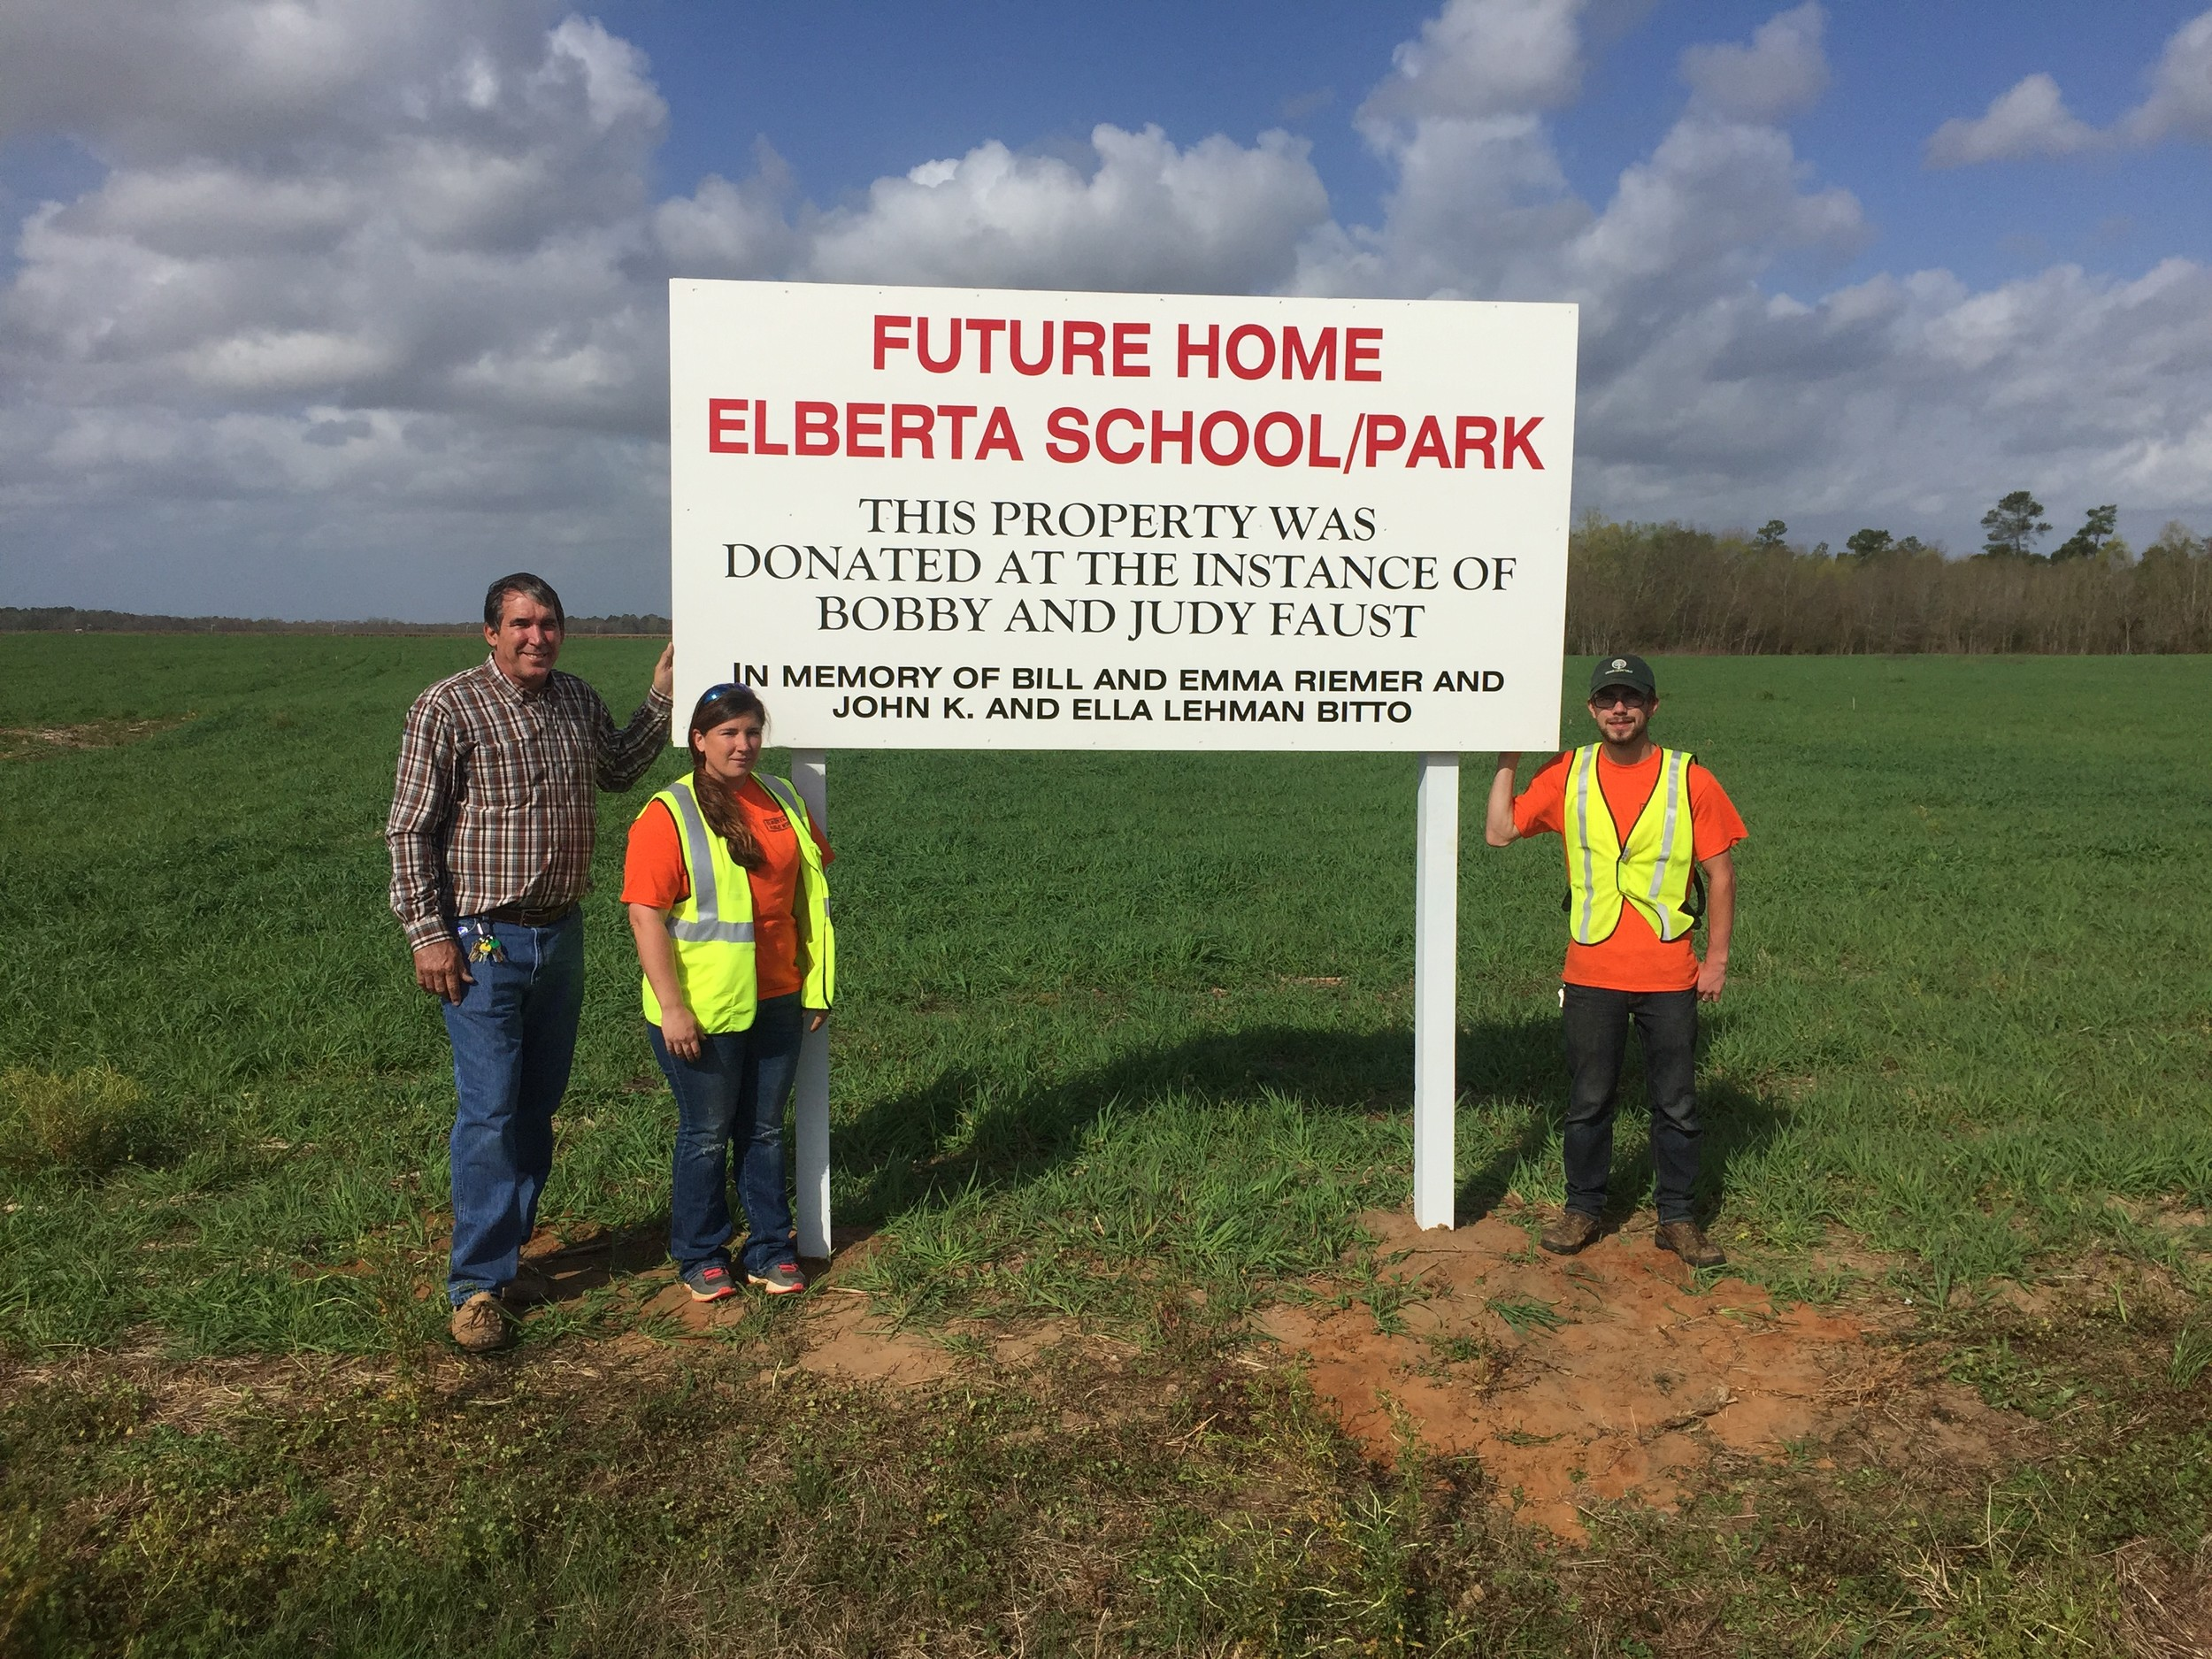 Mayor Jim Hamby and city staff stand with the newly erected sign thanking the Faust family for their 38 acre land donation to the town of Elberta.